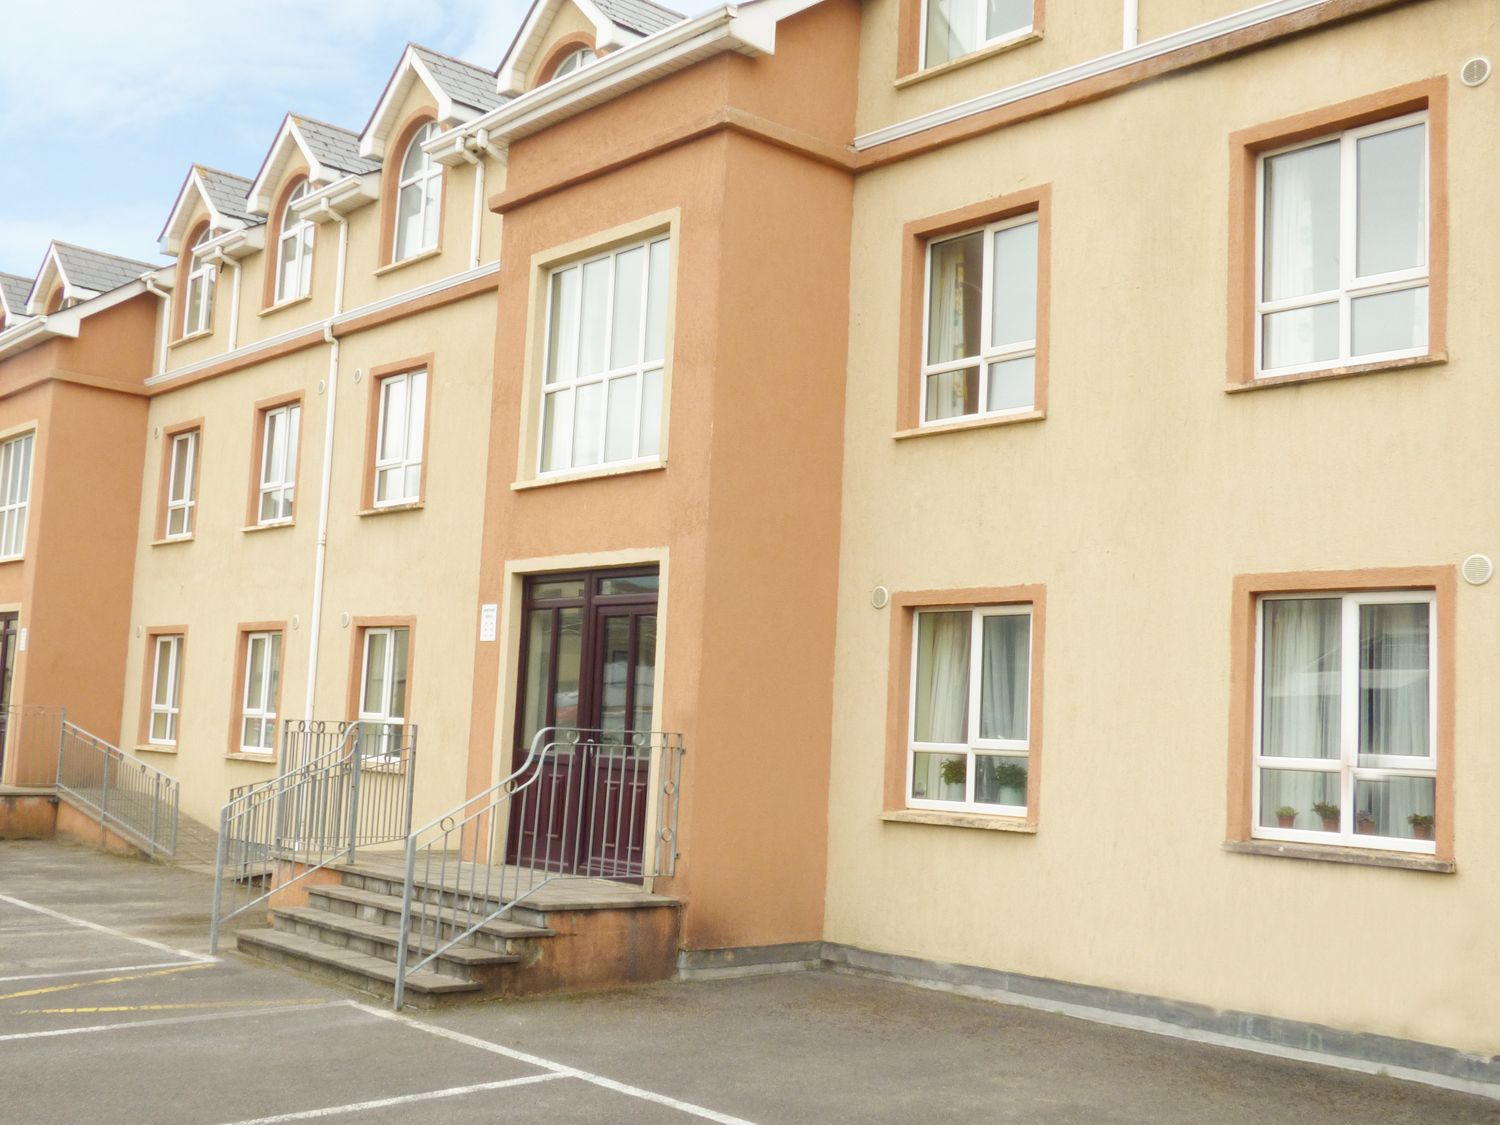 56 Atlantic Point - County Donegal - 953807 - photo 1